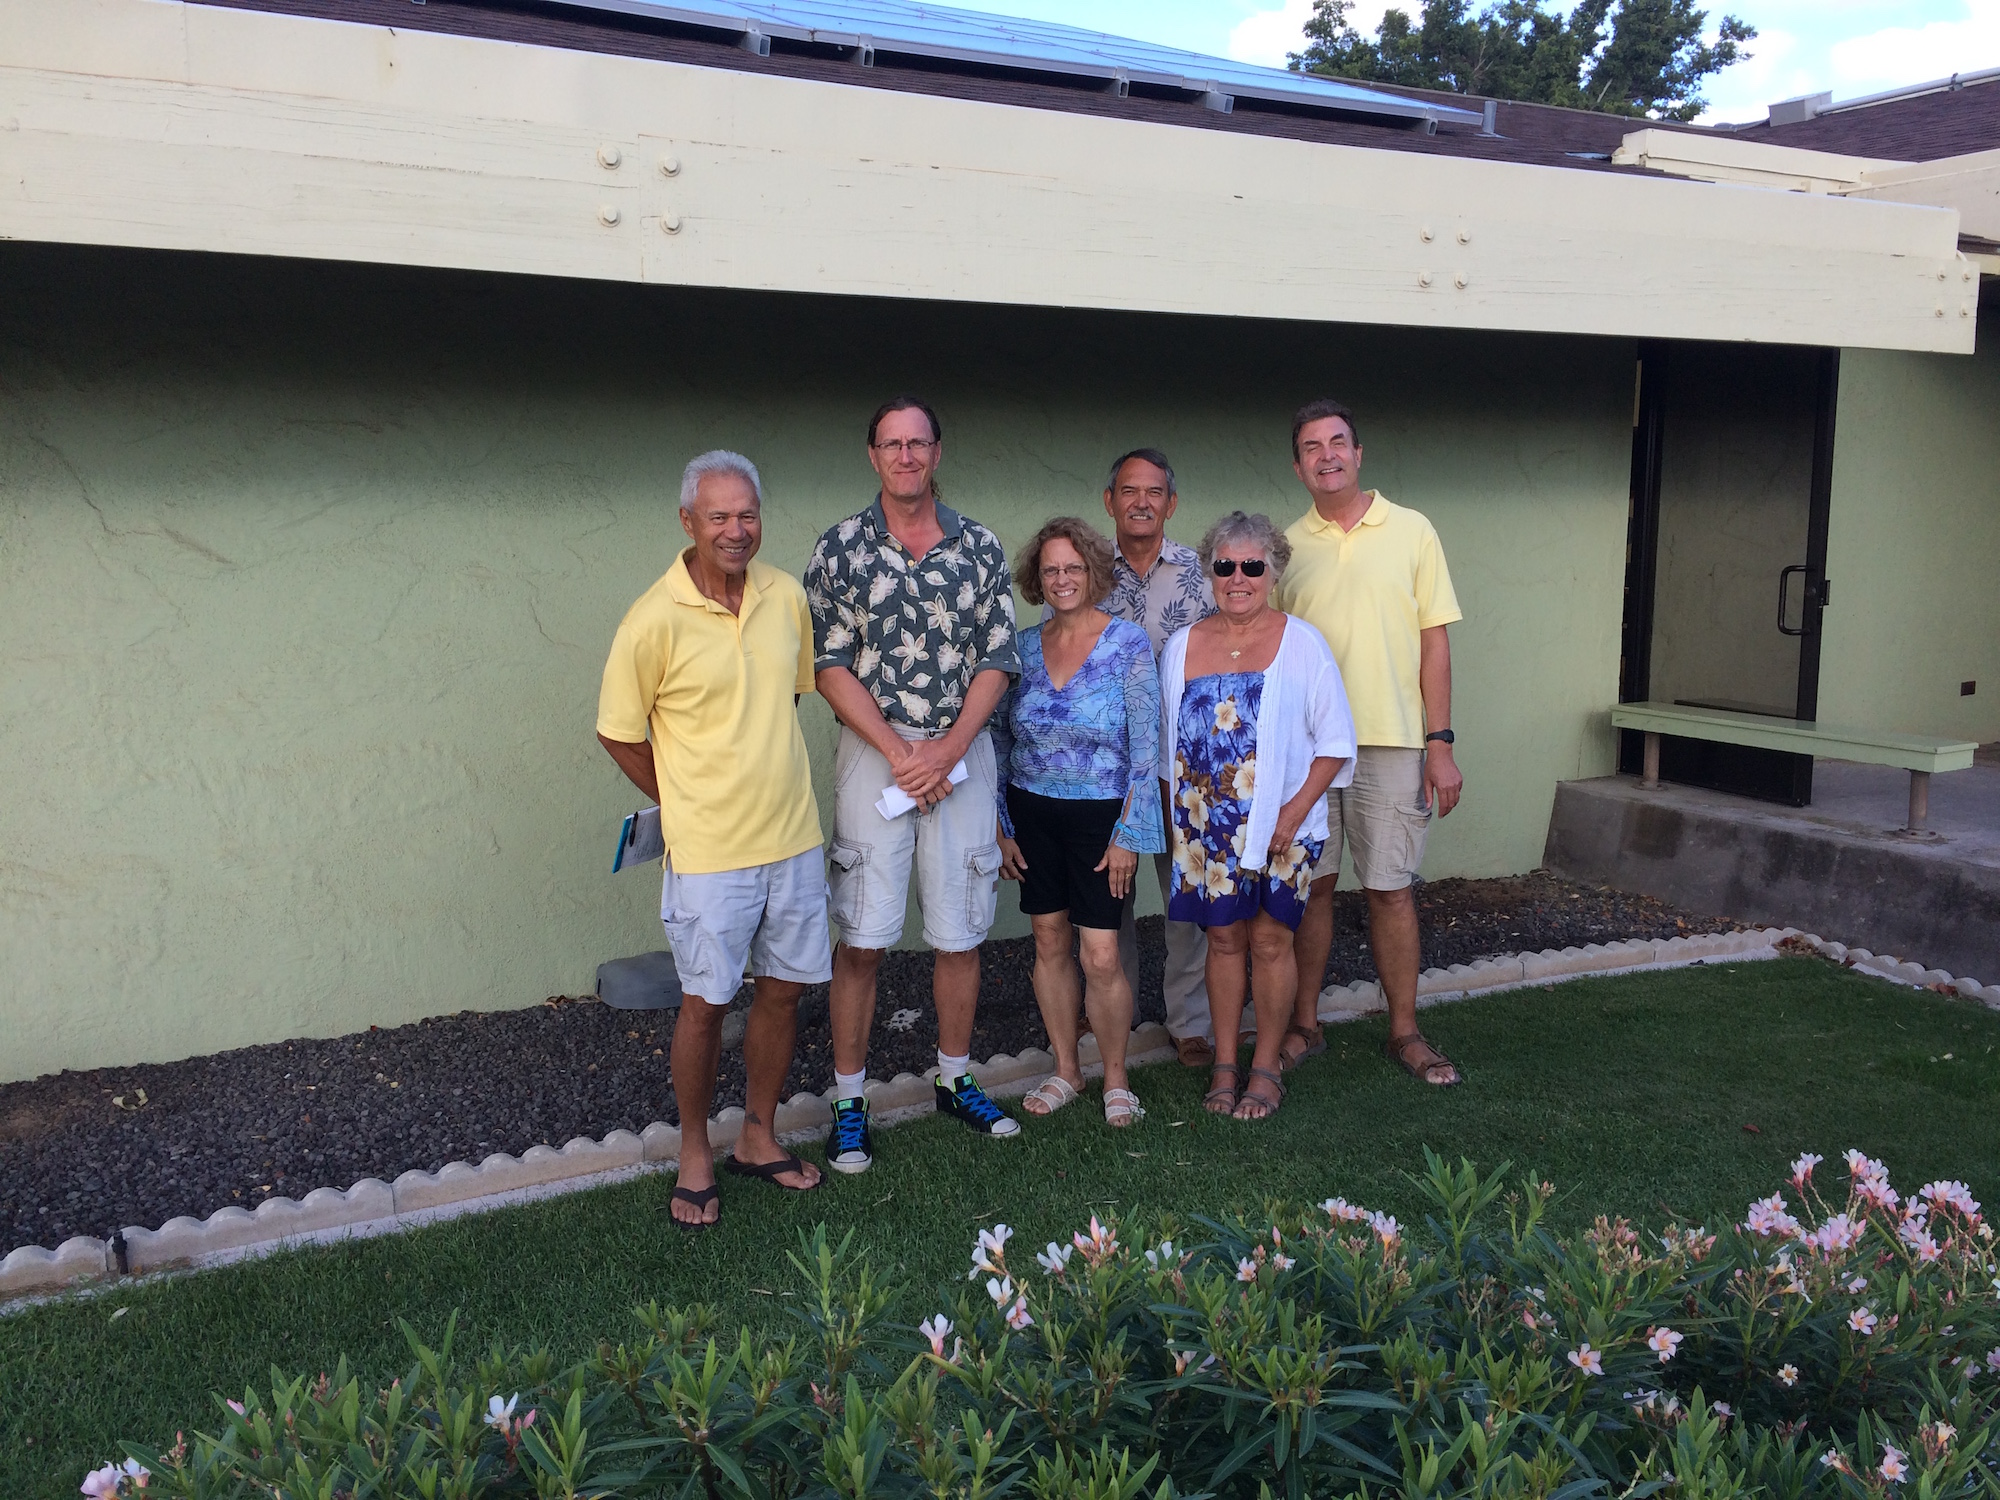 Waikoloa Fire Management Committee